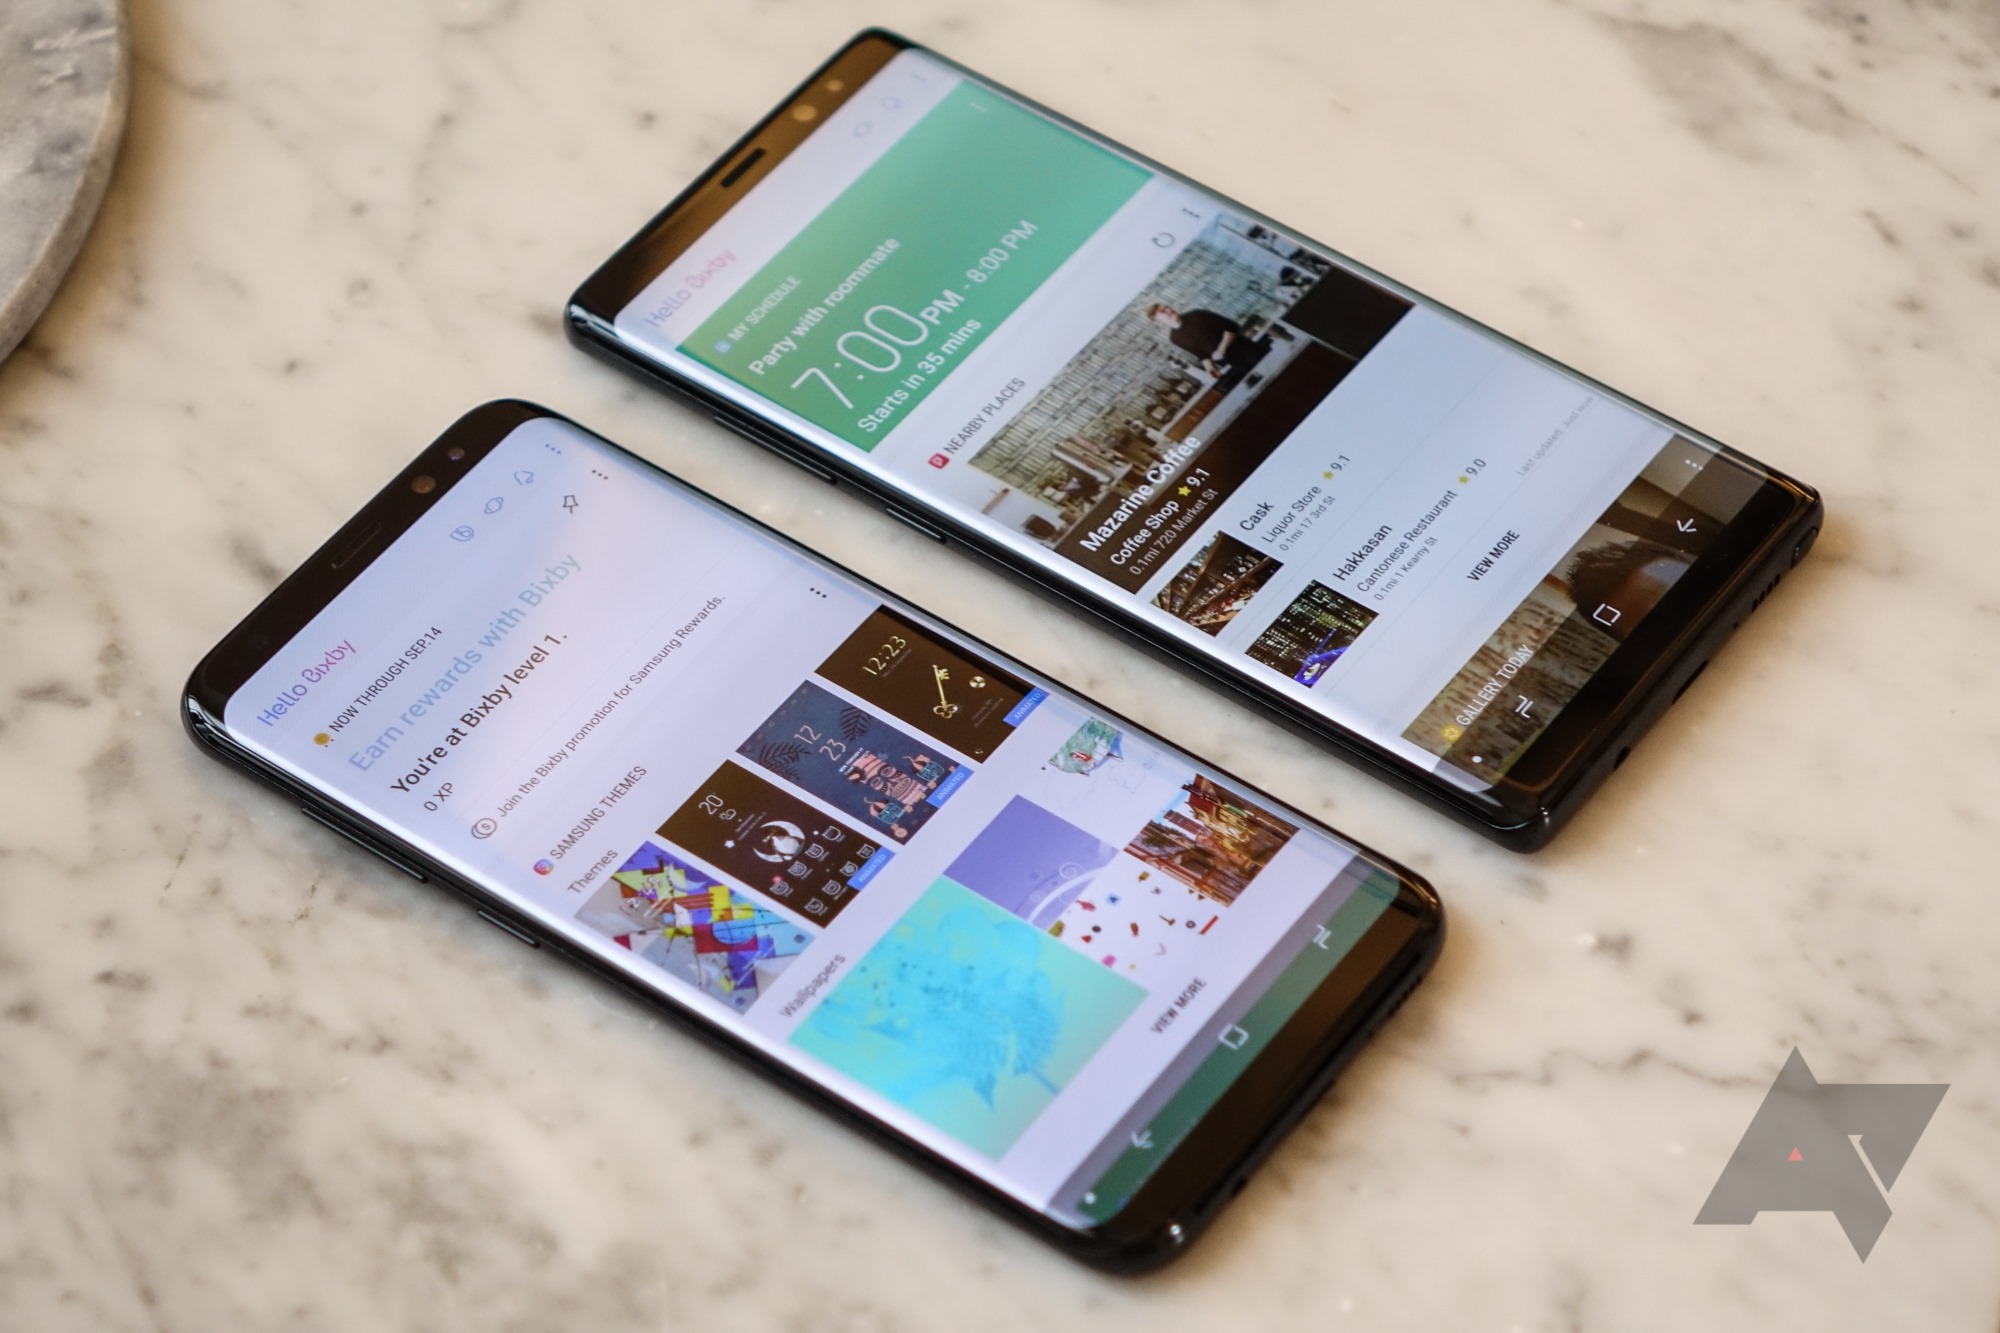 Opinion: The Galaxy Note8 is the beginning of the end of the